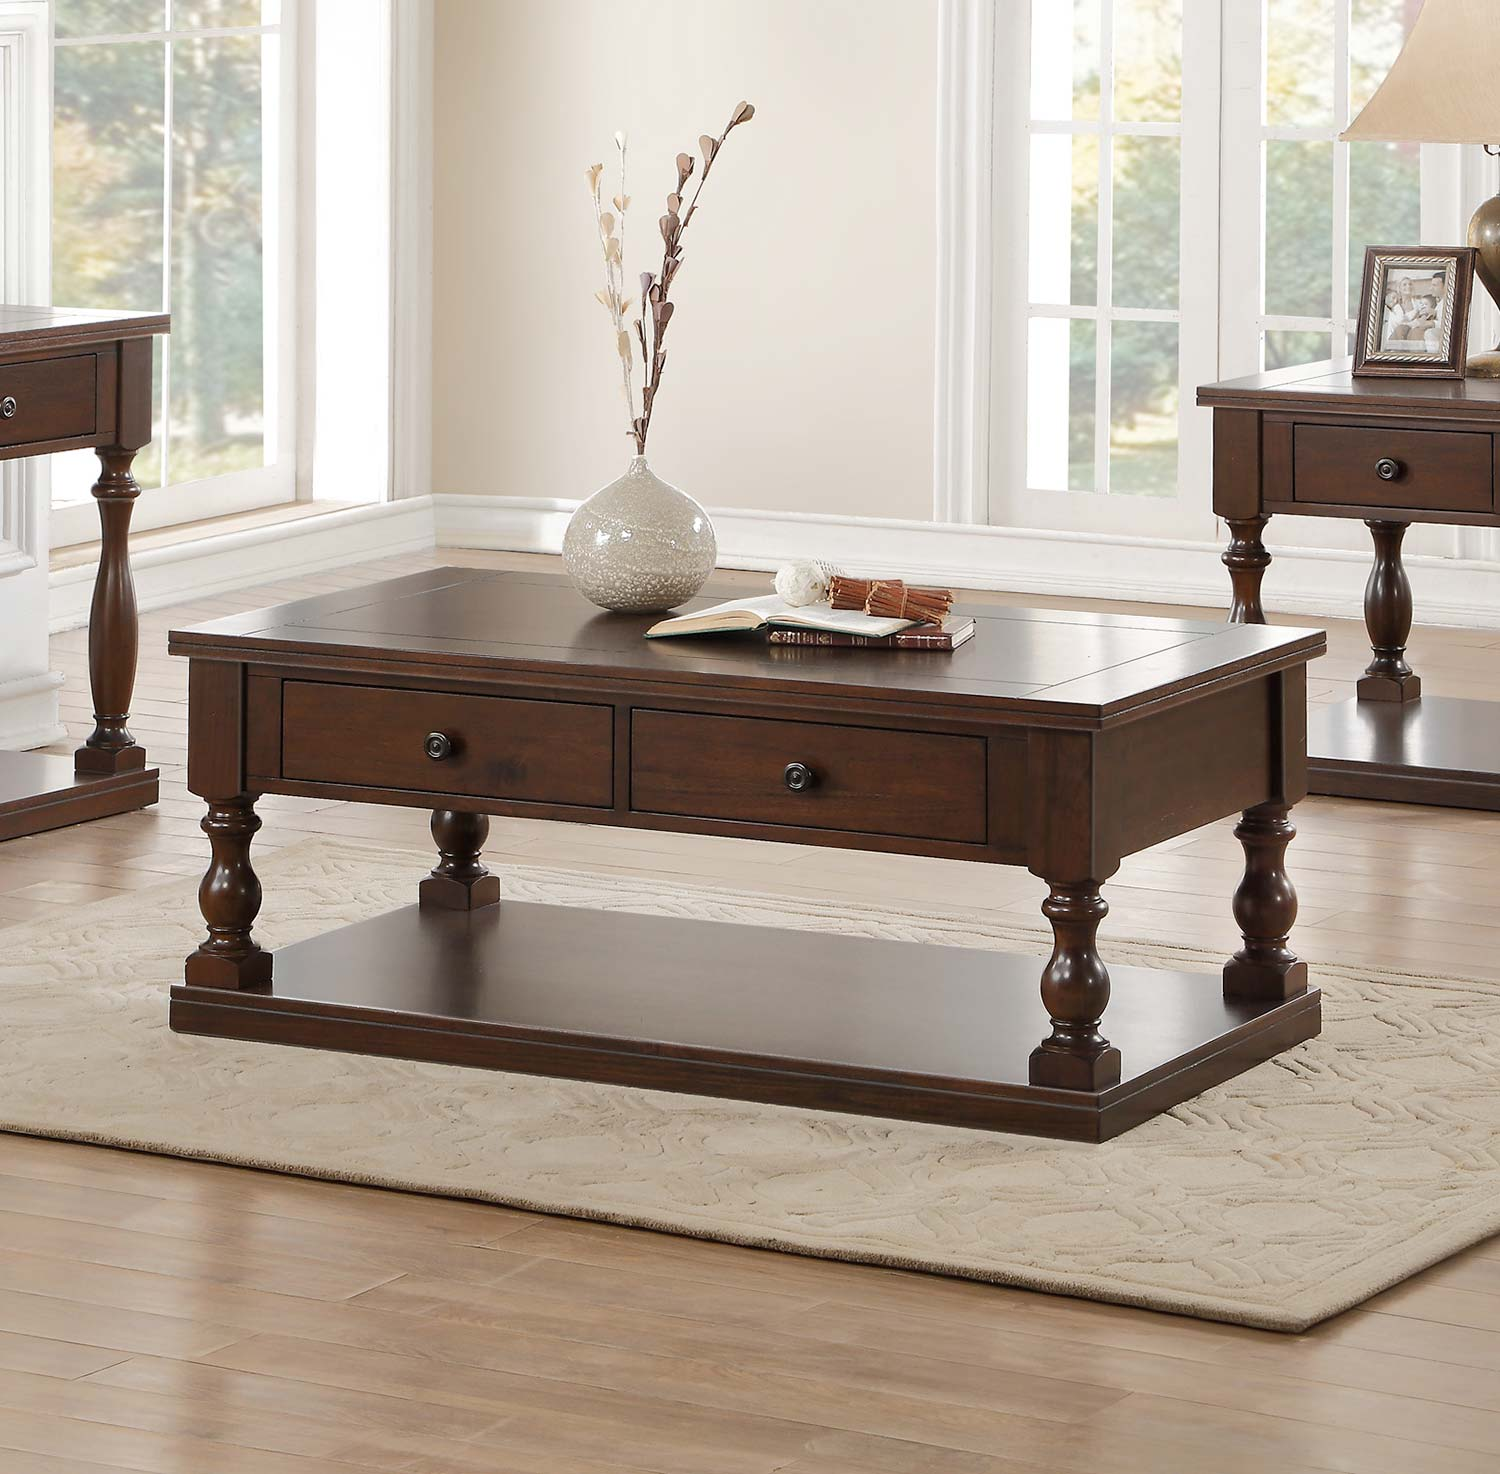 Homelegance Reid Coffee/Cocktail Table with Two Functional Drawers on Casters